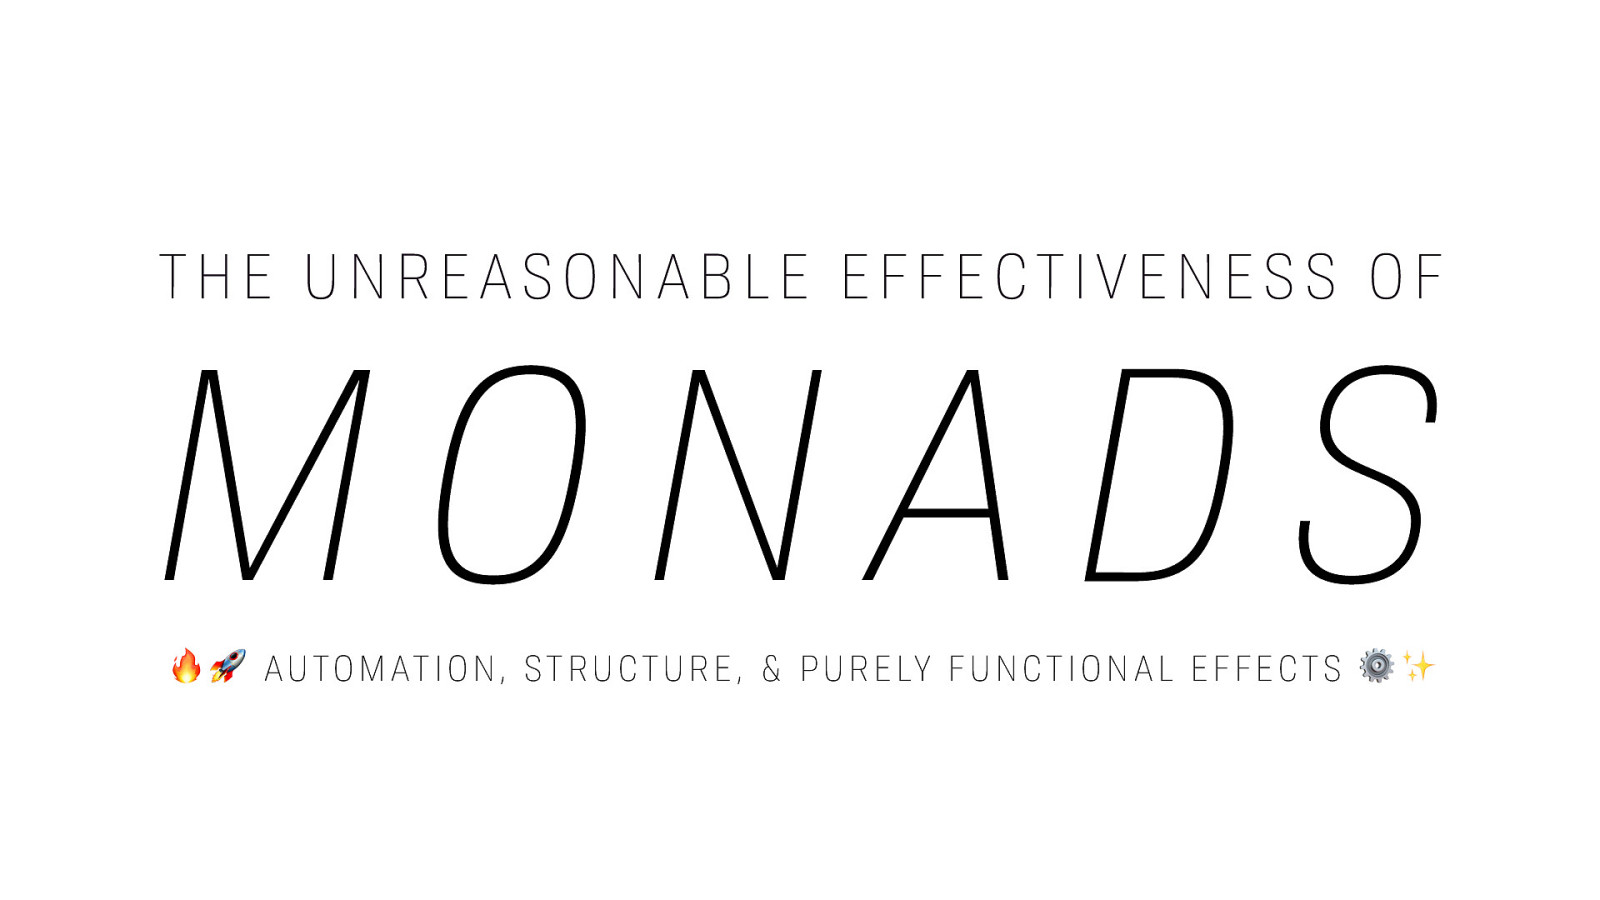 The Unreasonable Effectiveness of Monads